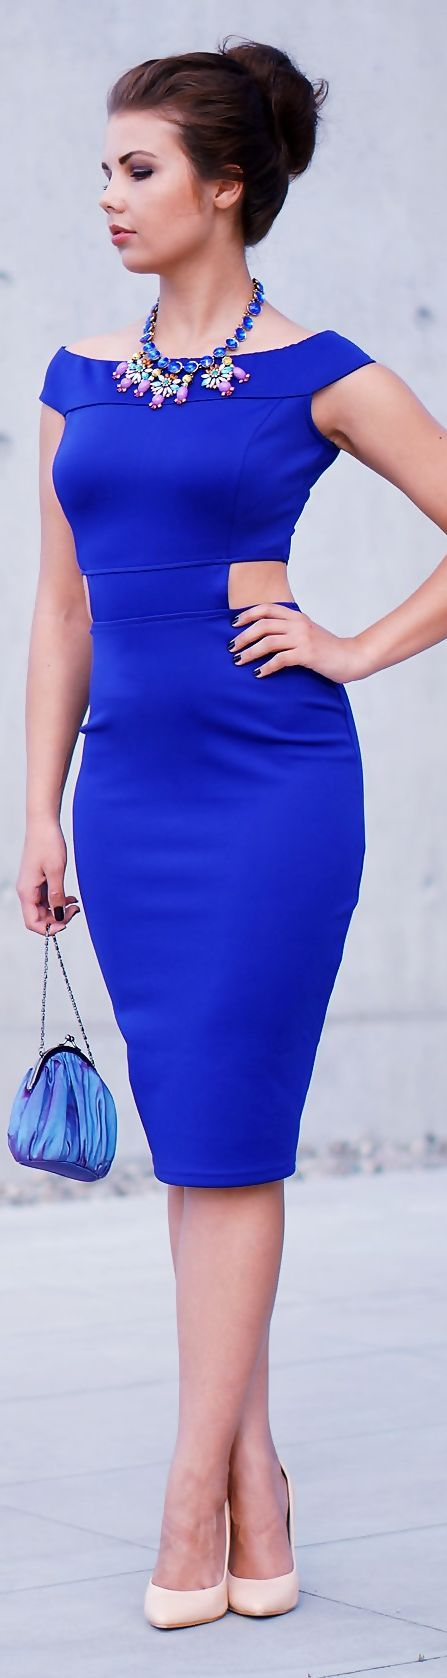 Stunning Blue Midi Dress with perfect choice of accessories